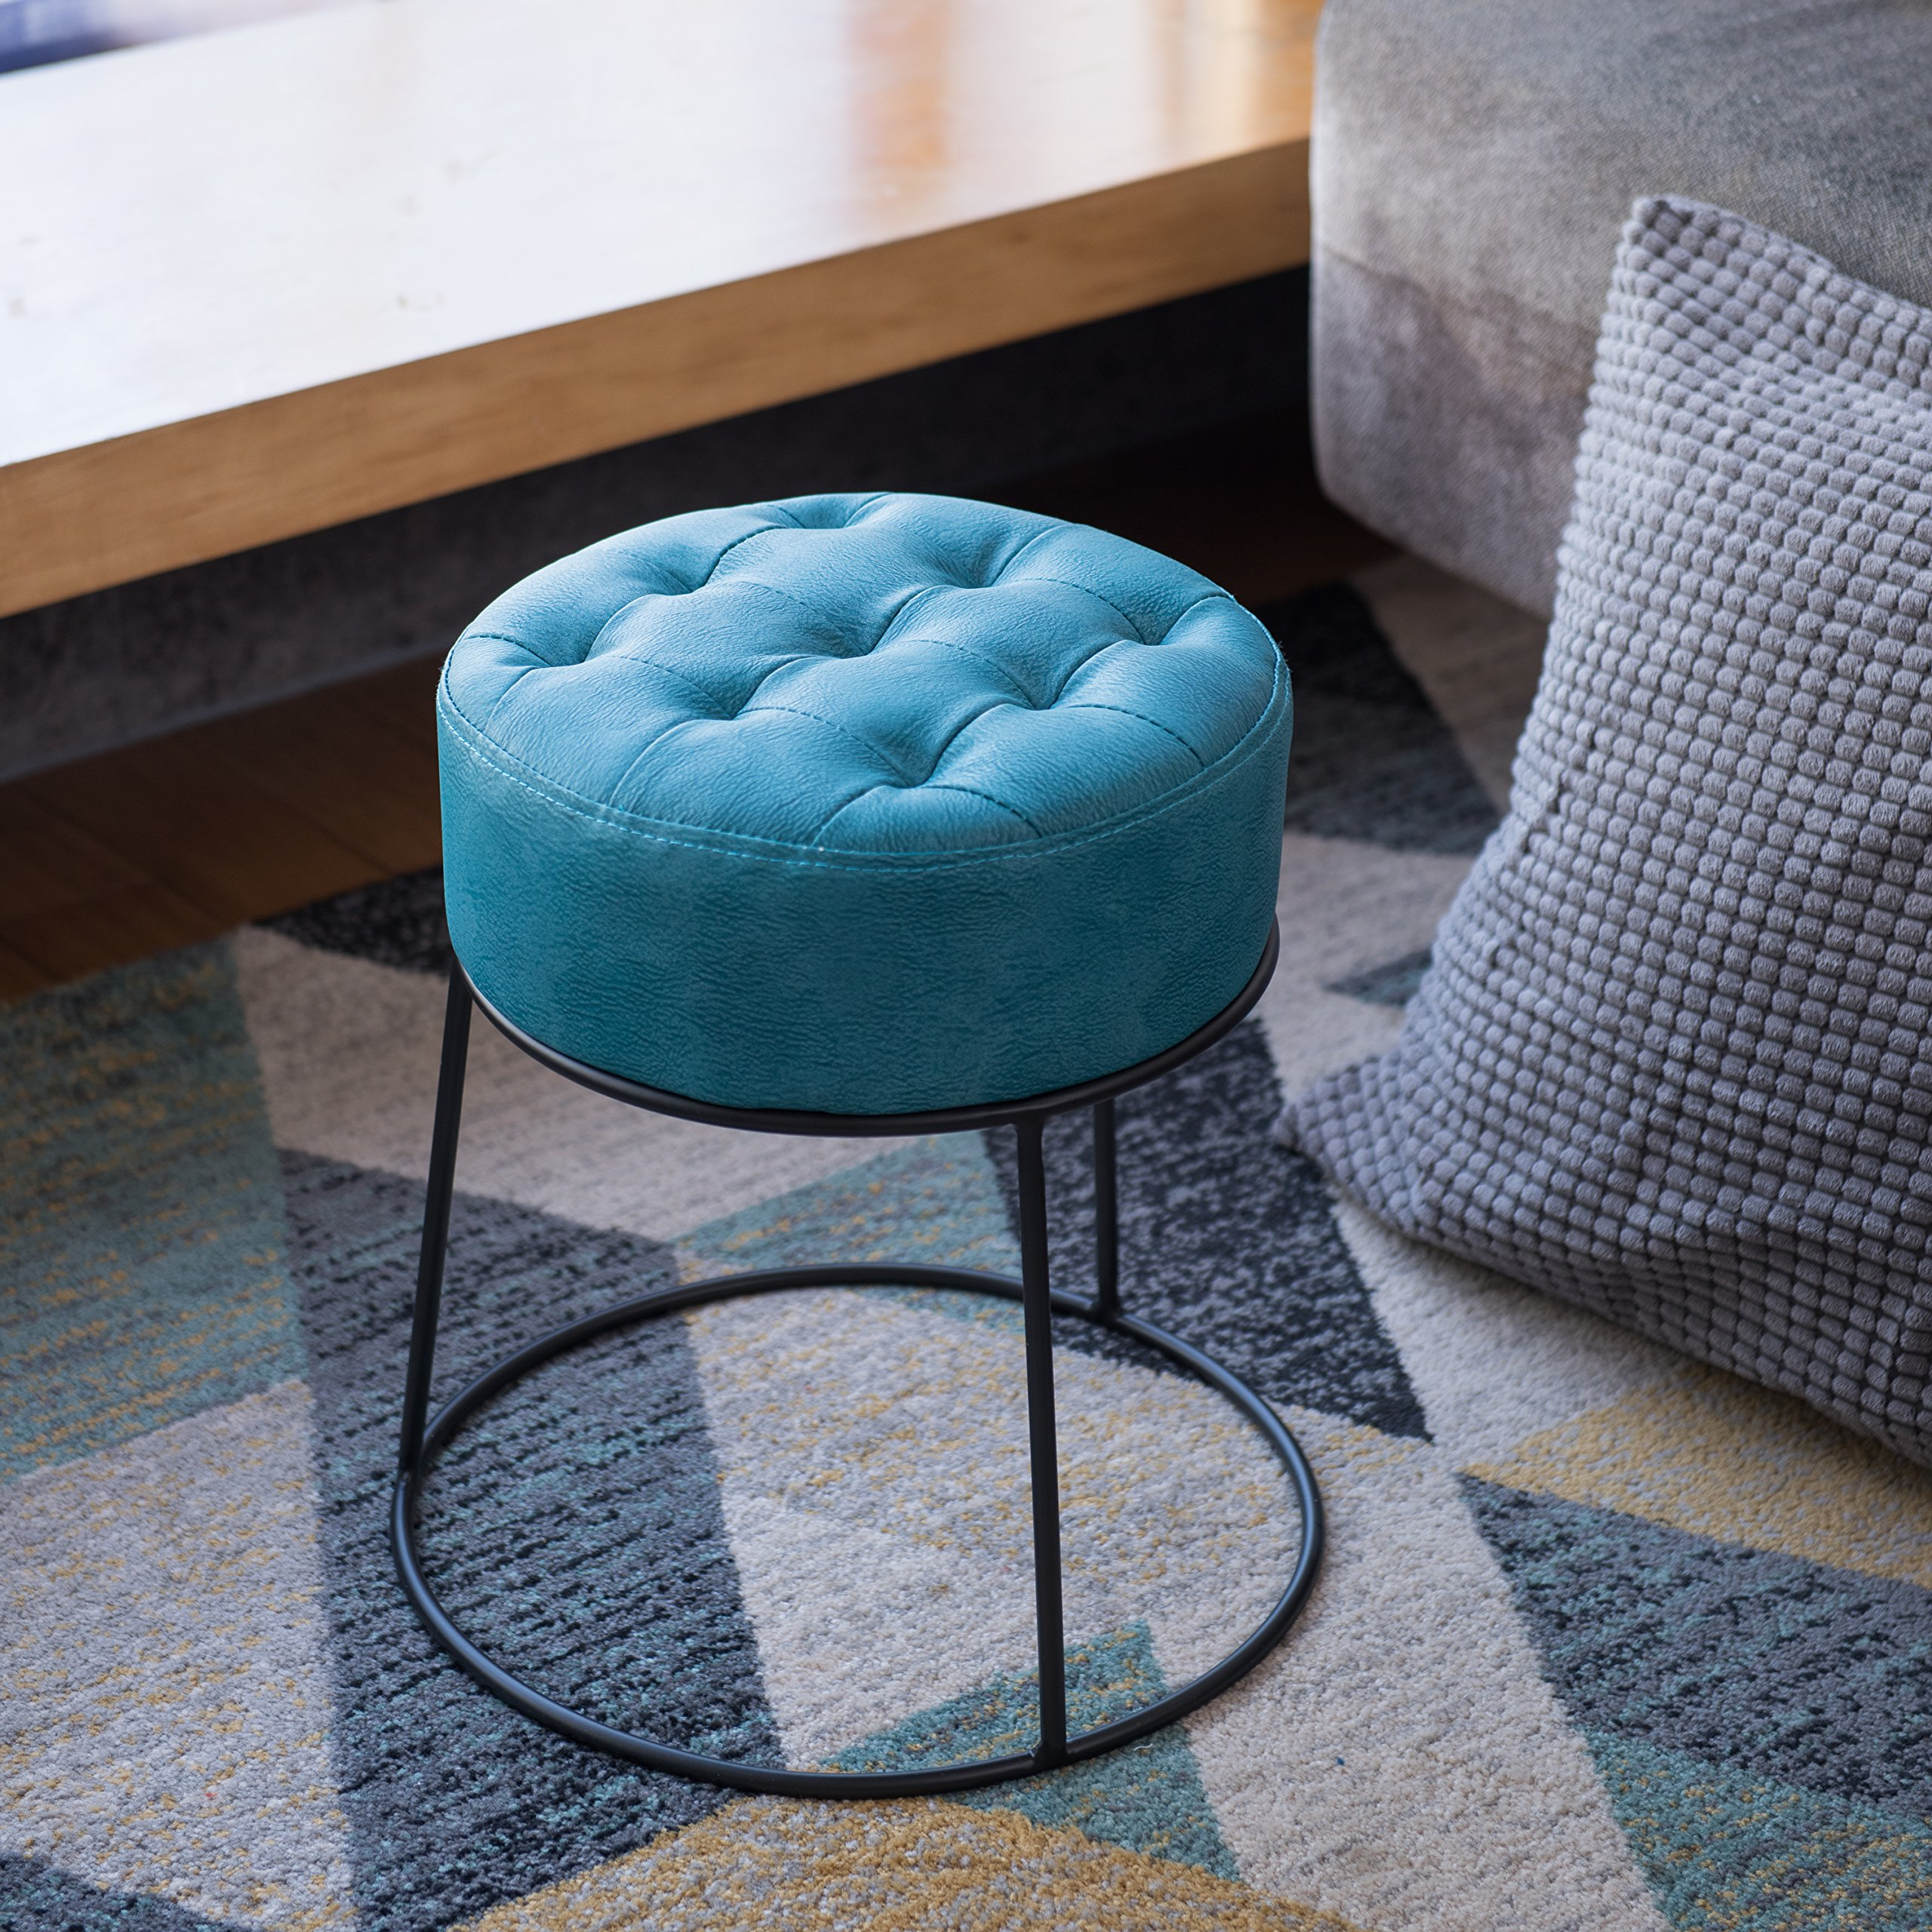 Art-Leon Dwarf Round Stool Stackable Ottoman Button Tufted Seat Pad Footrest Small Seat Hi-end Faux Leather Turquoise